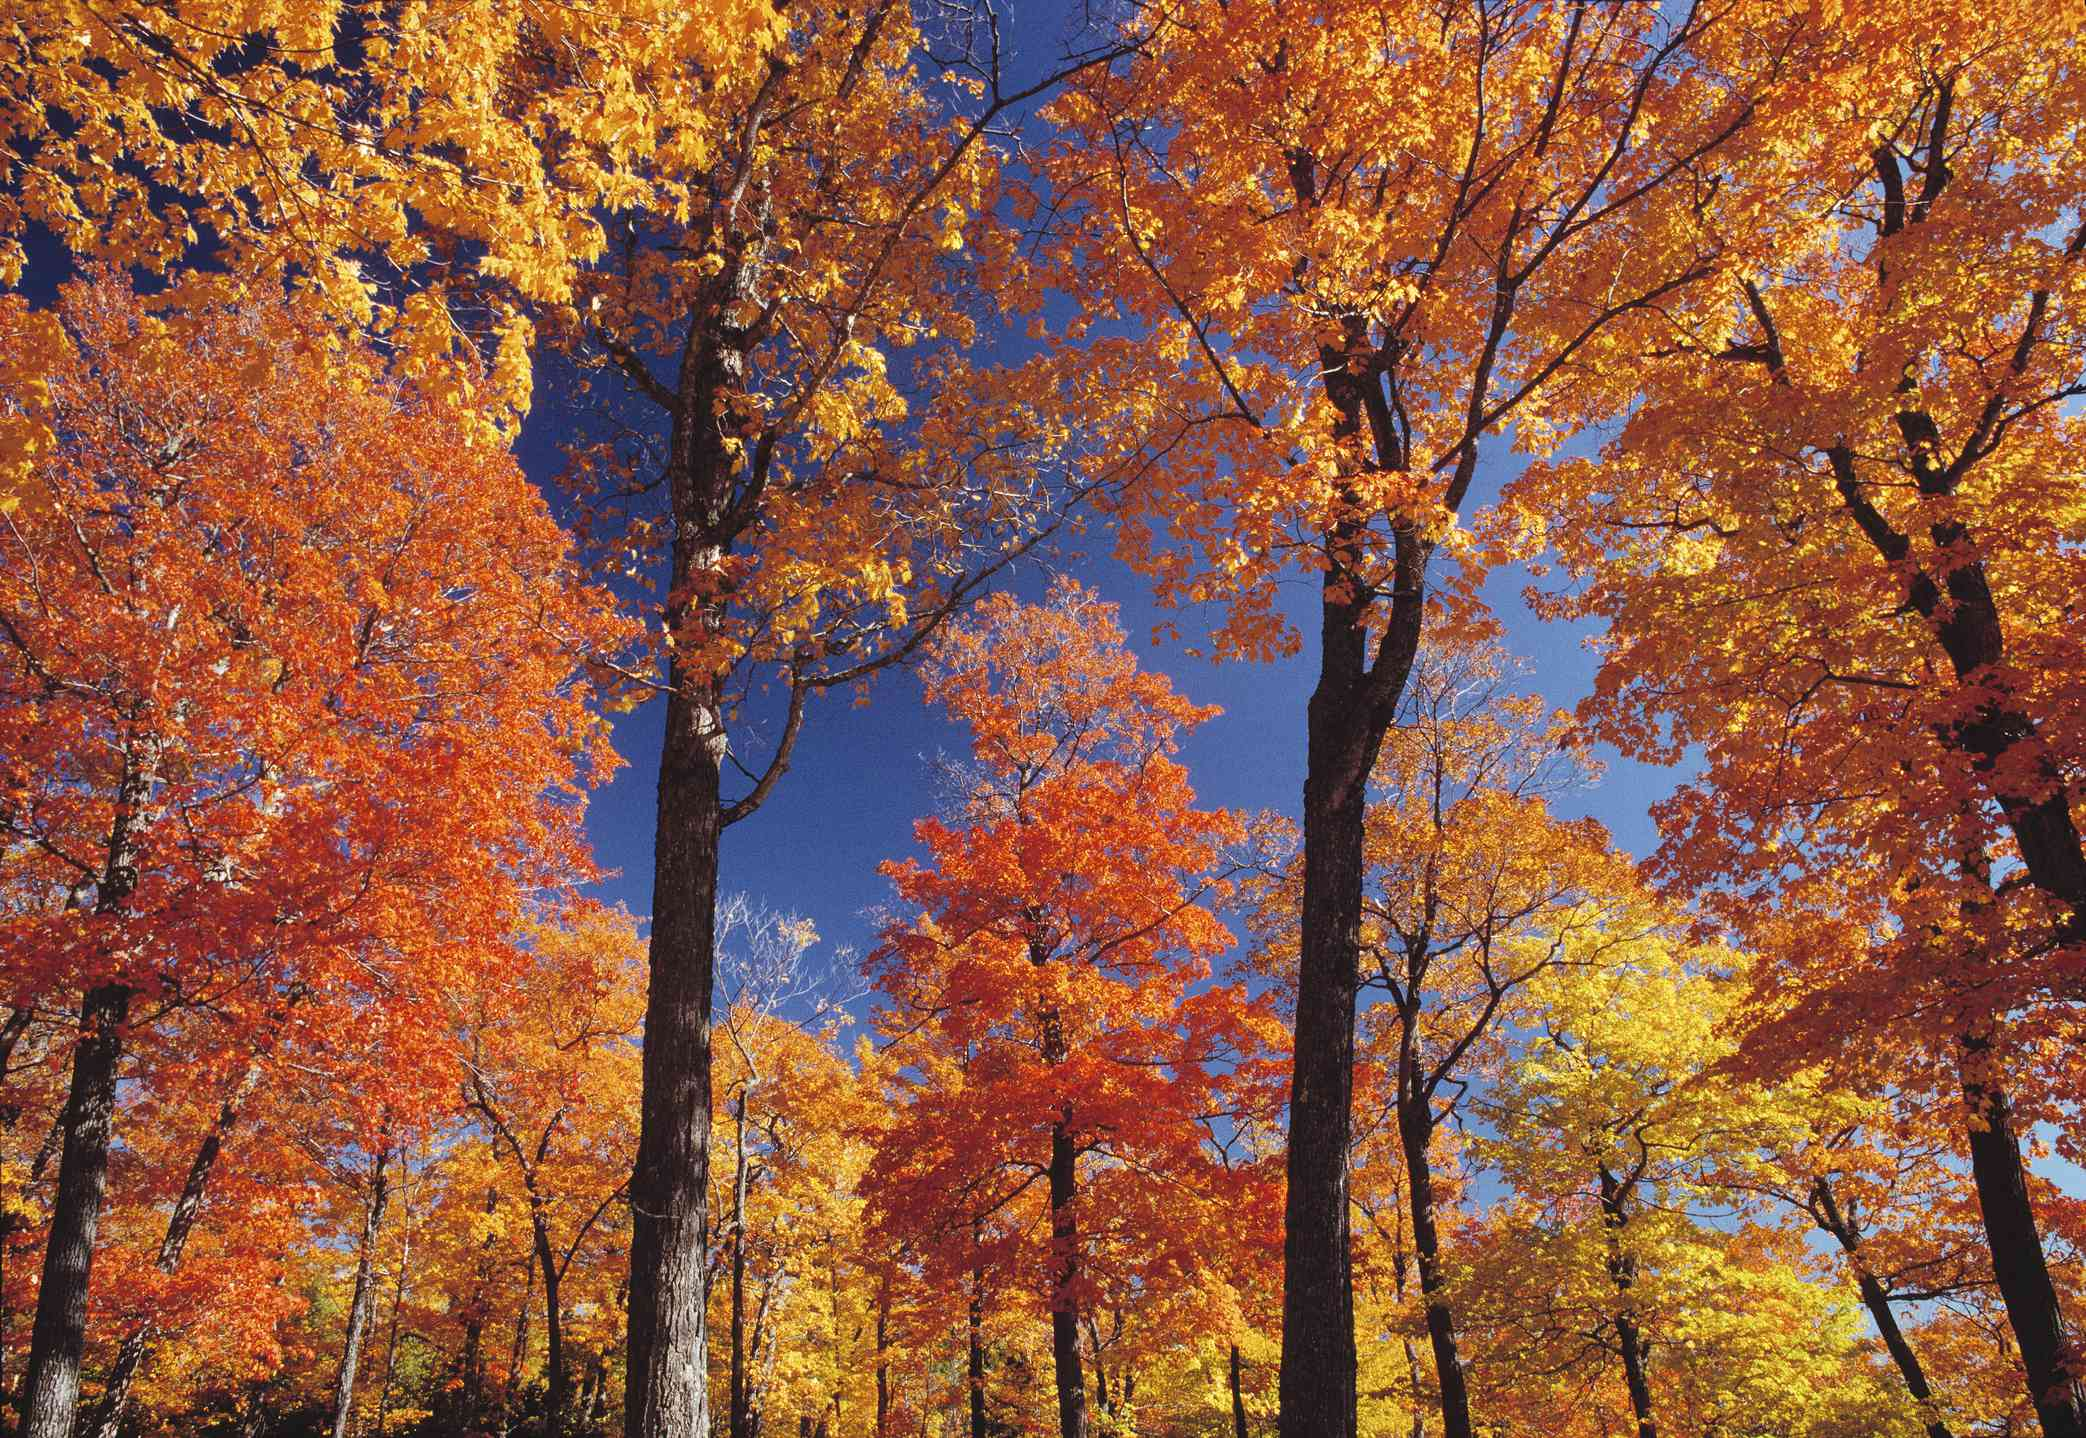 Deciduous forest in autumn in Charlevoix region